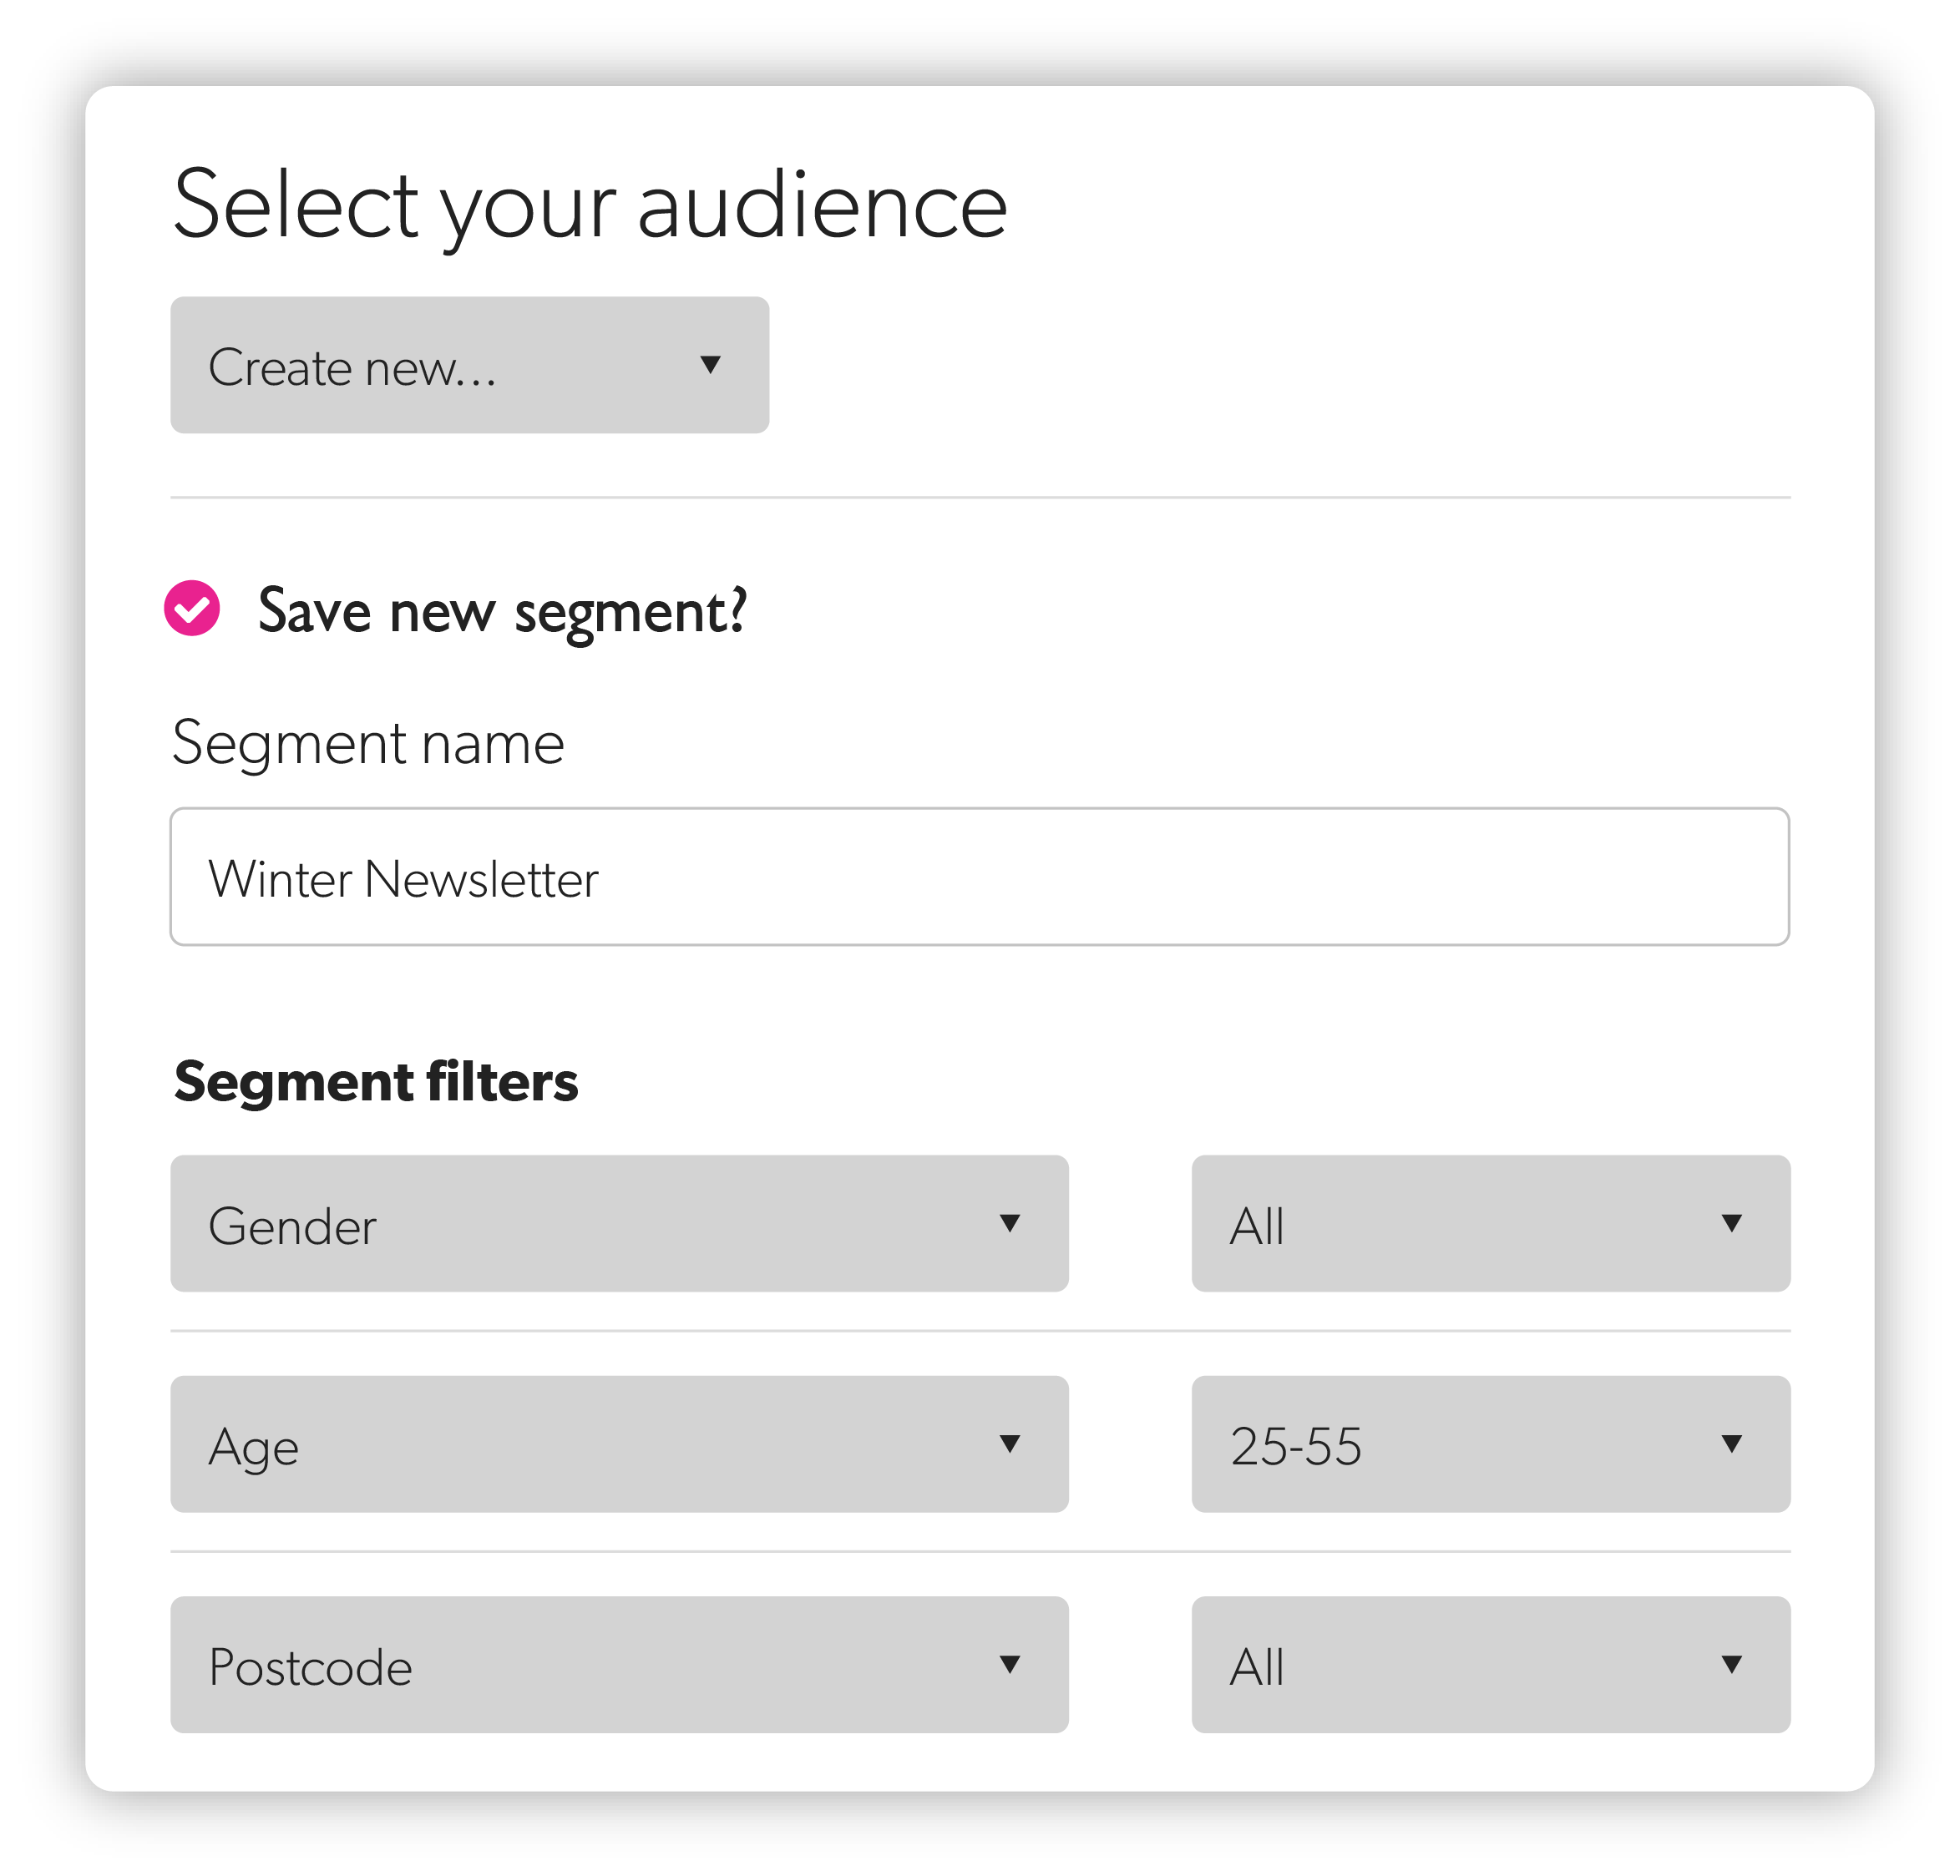 Improved targeting and personalization